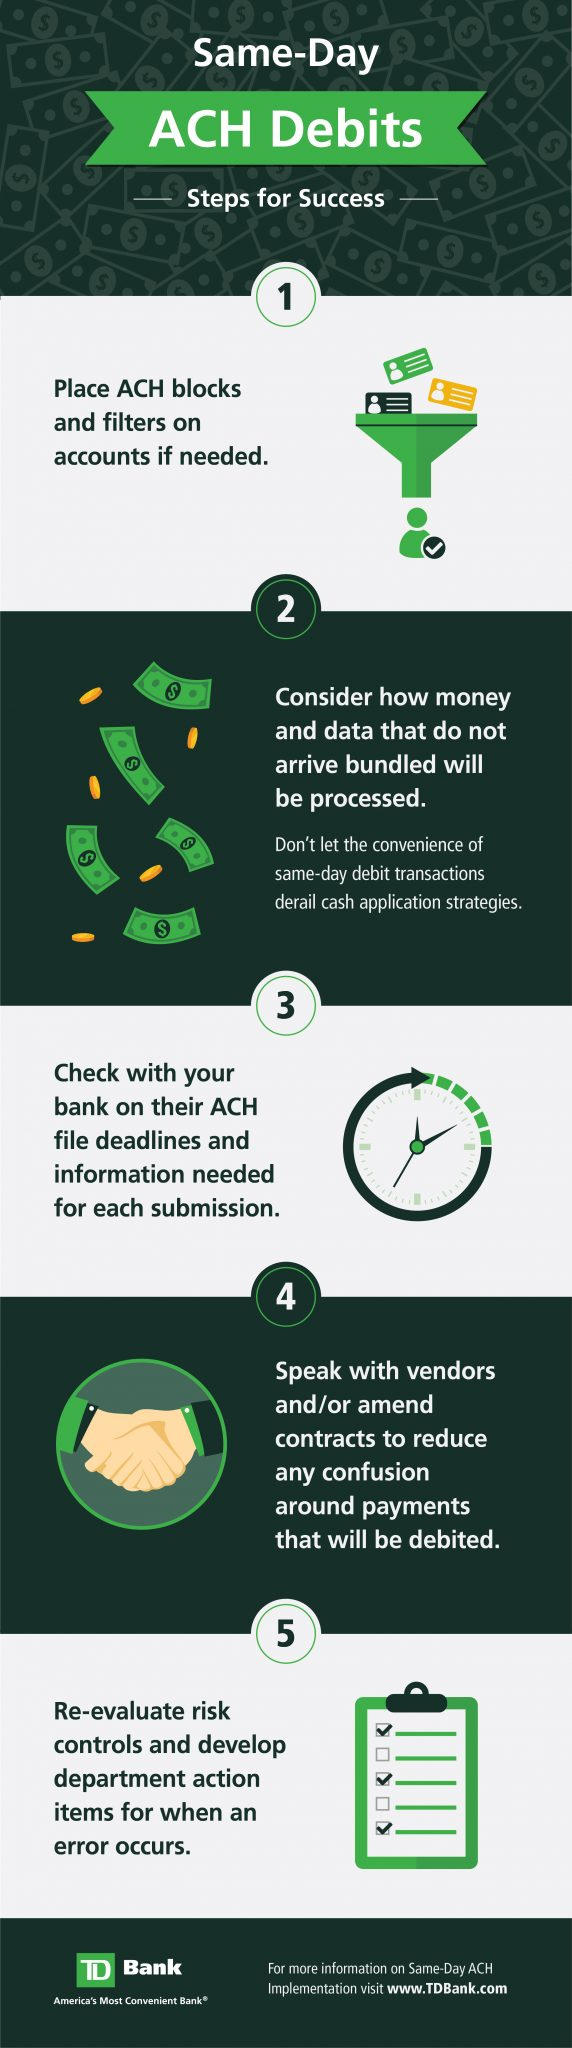 ACH Debits Infographic TD Bank